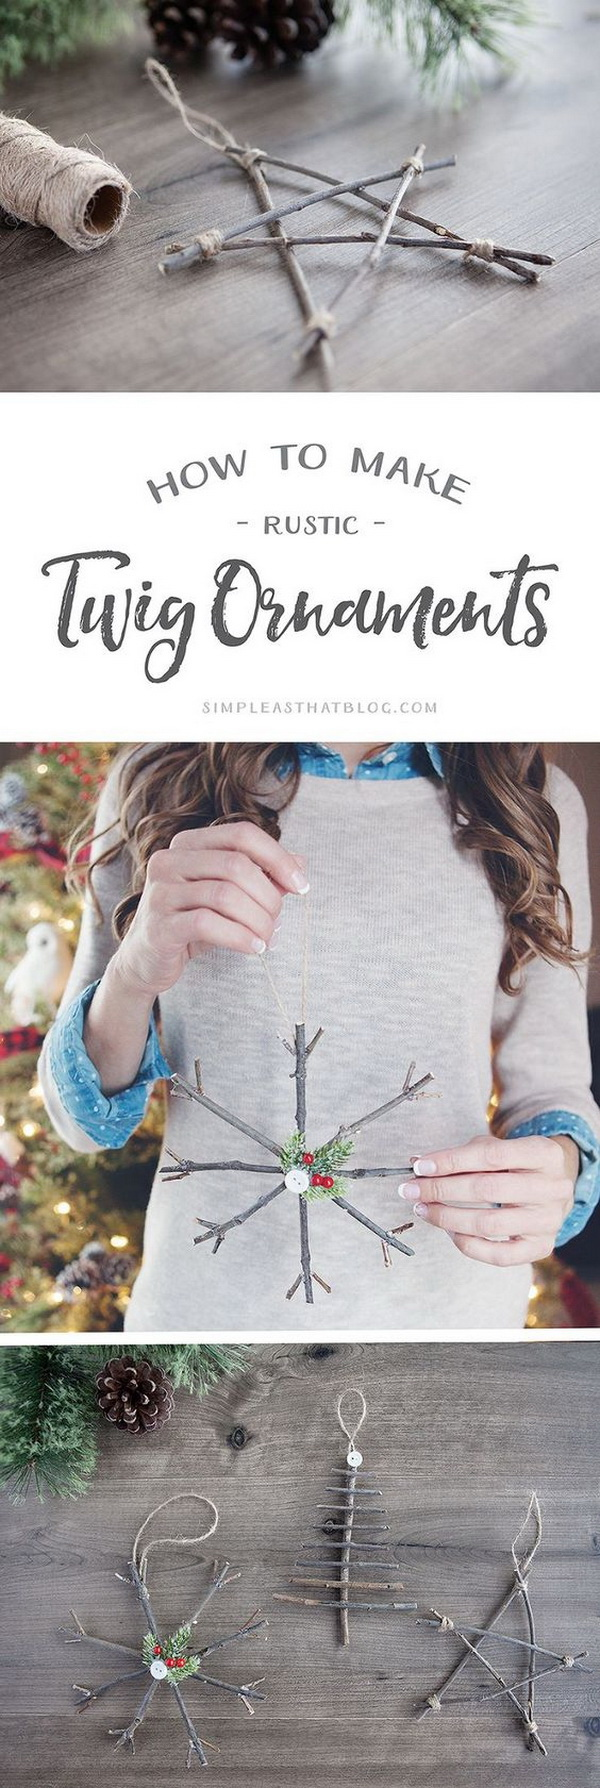 DIY Rustic Twig Christmas Ornaments. Bring a touch of nature indoors this year as you decorate your tree with these rustic twig Christmas ornaments! They're simple, inexpensive and look beautiful!